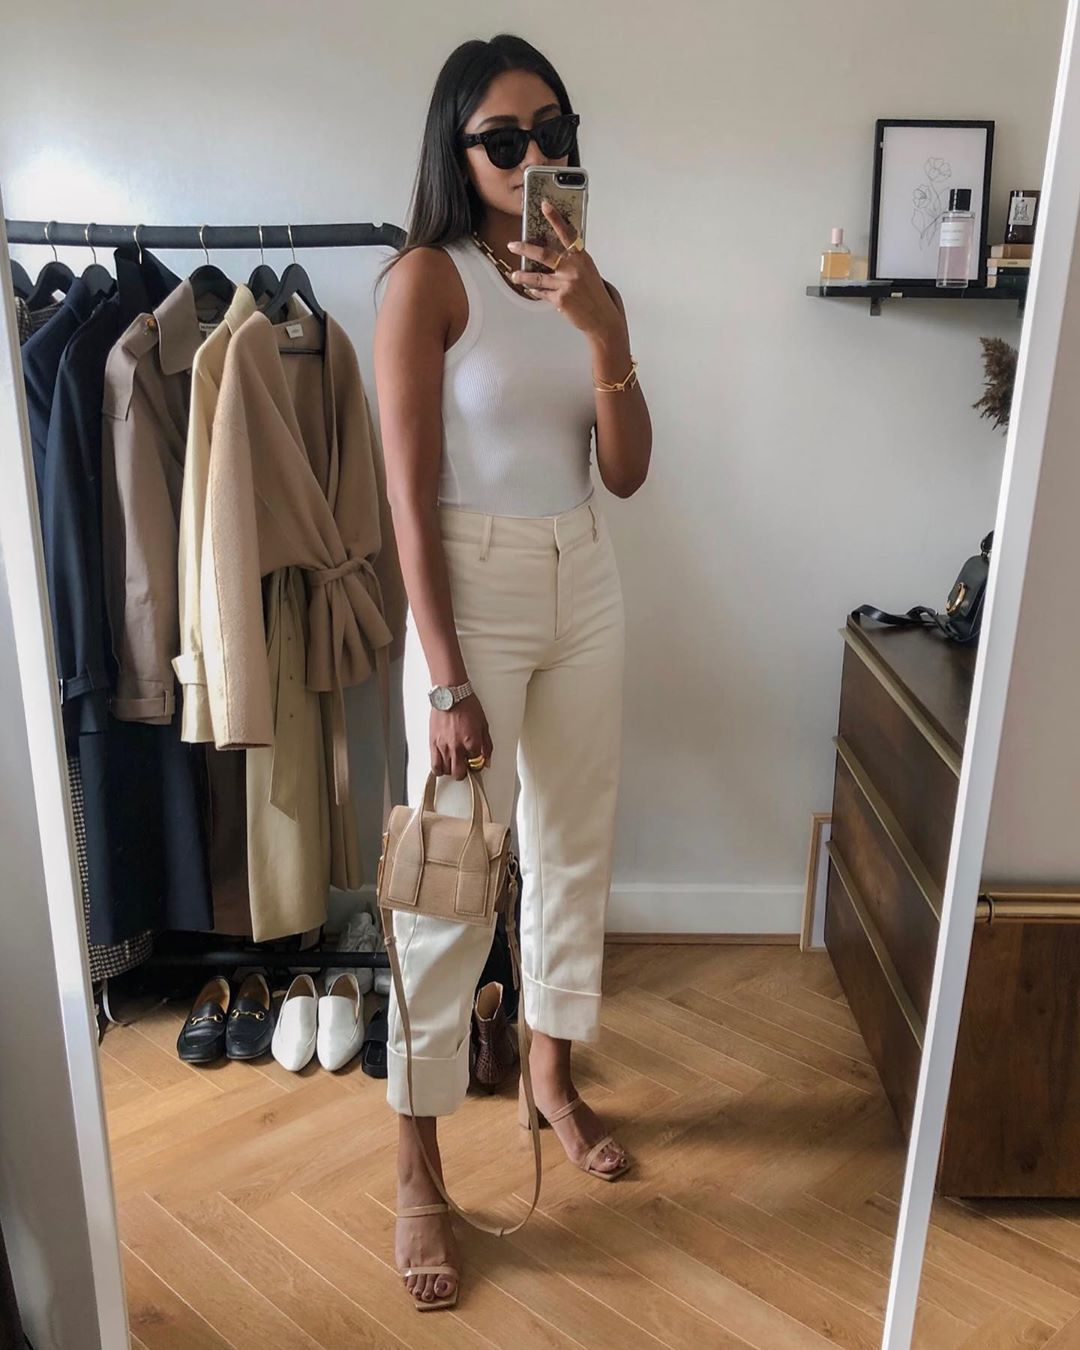 Pin by alexandria cooper on Stylin' in 2019   Fashion